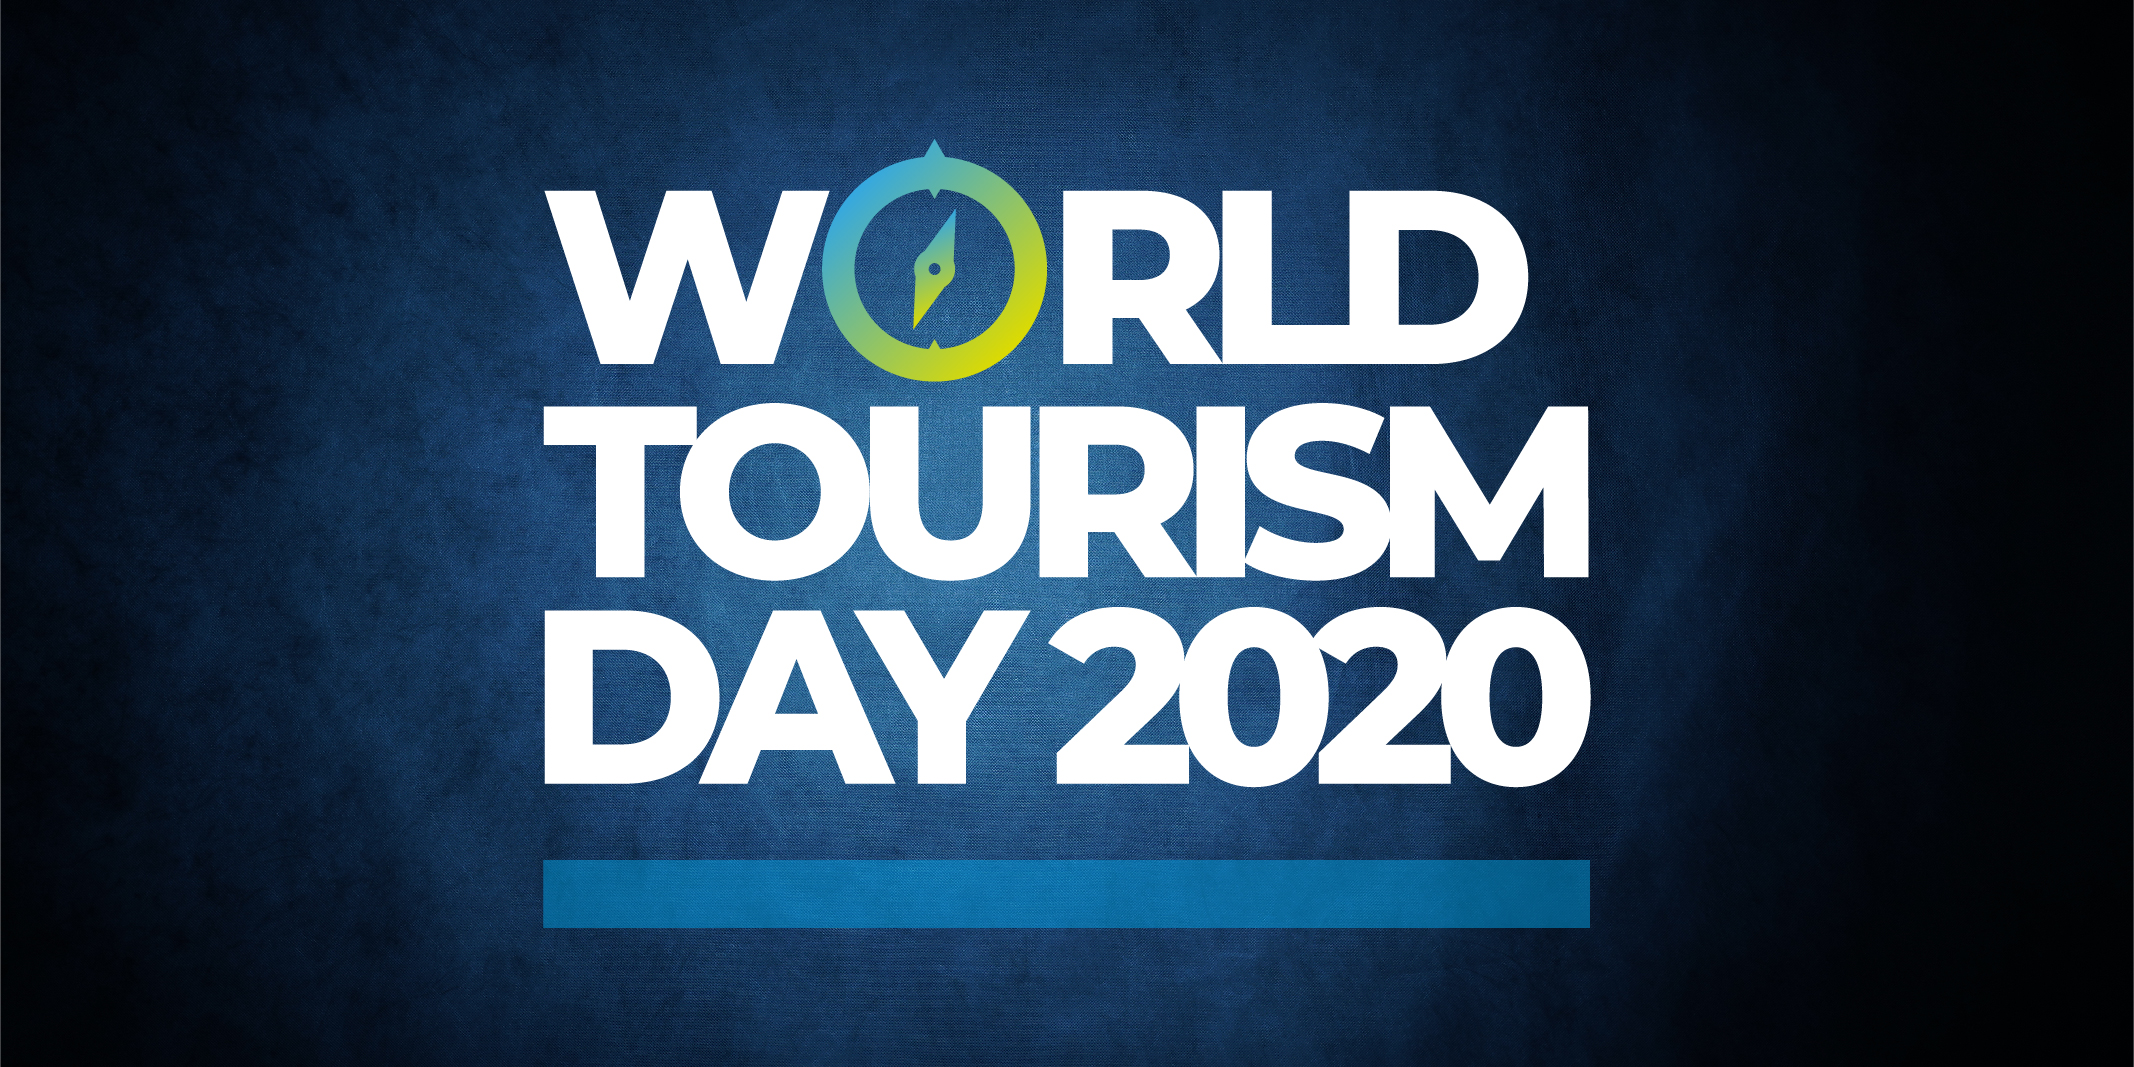 World Tourism Day 2020-  Official Message from UNWTO Secretary General